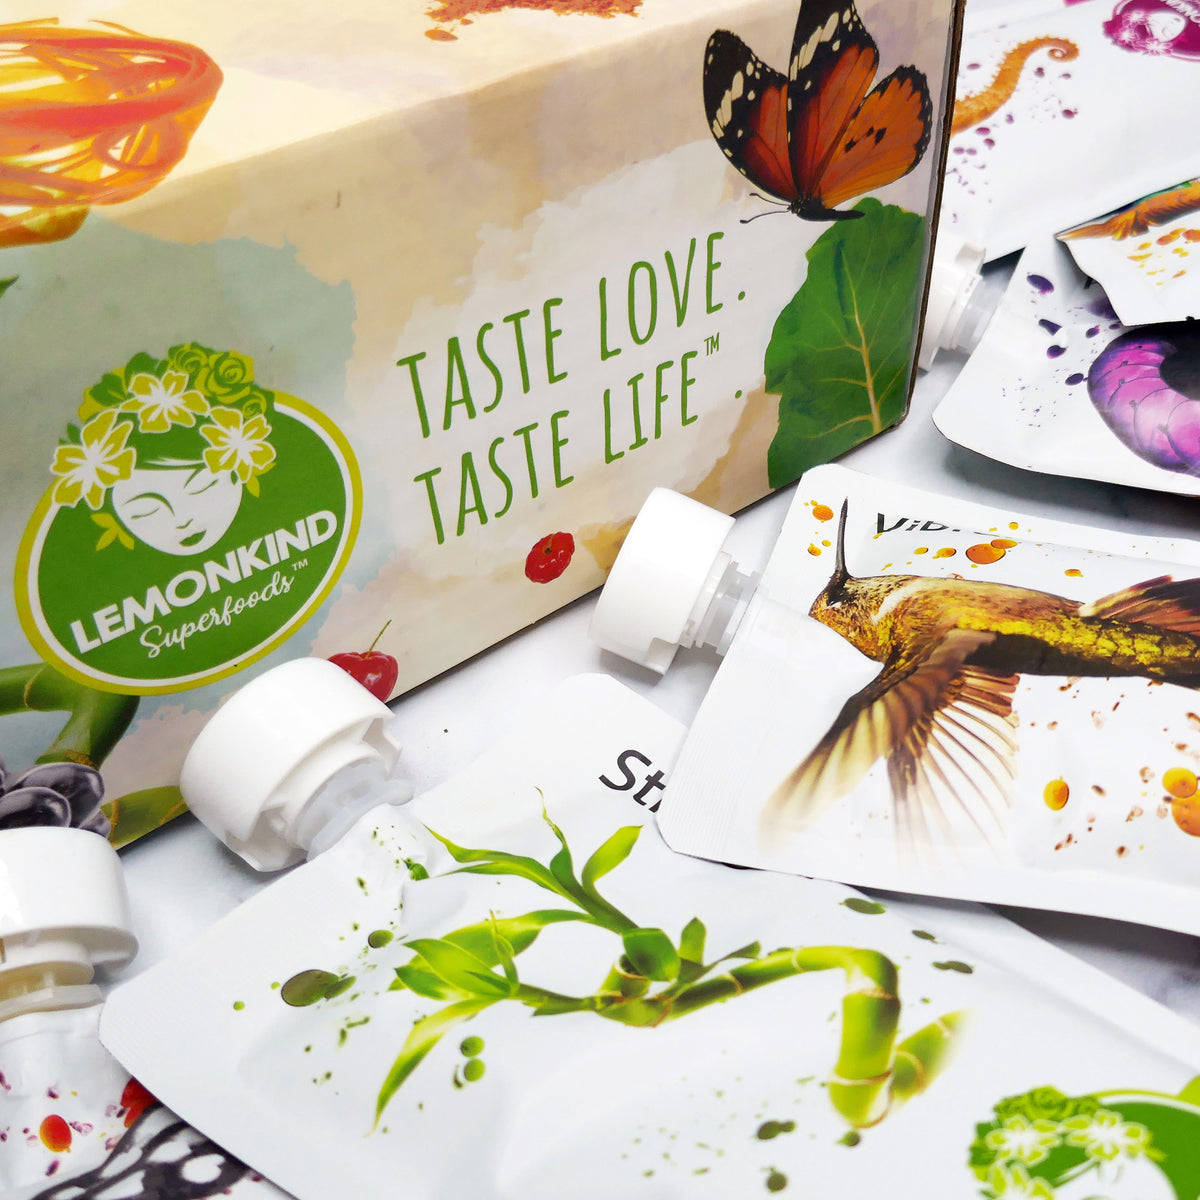 taste love taste life 3 day cleanse box with superfood juices detox gluten free non gmo vegan